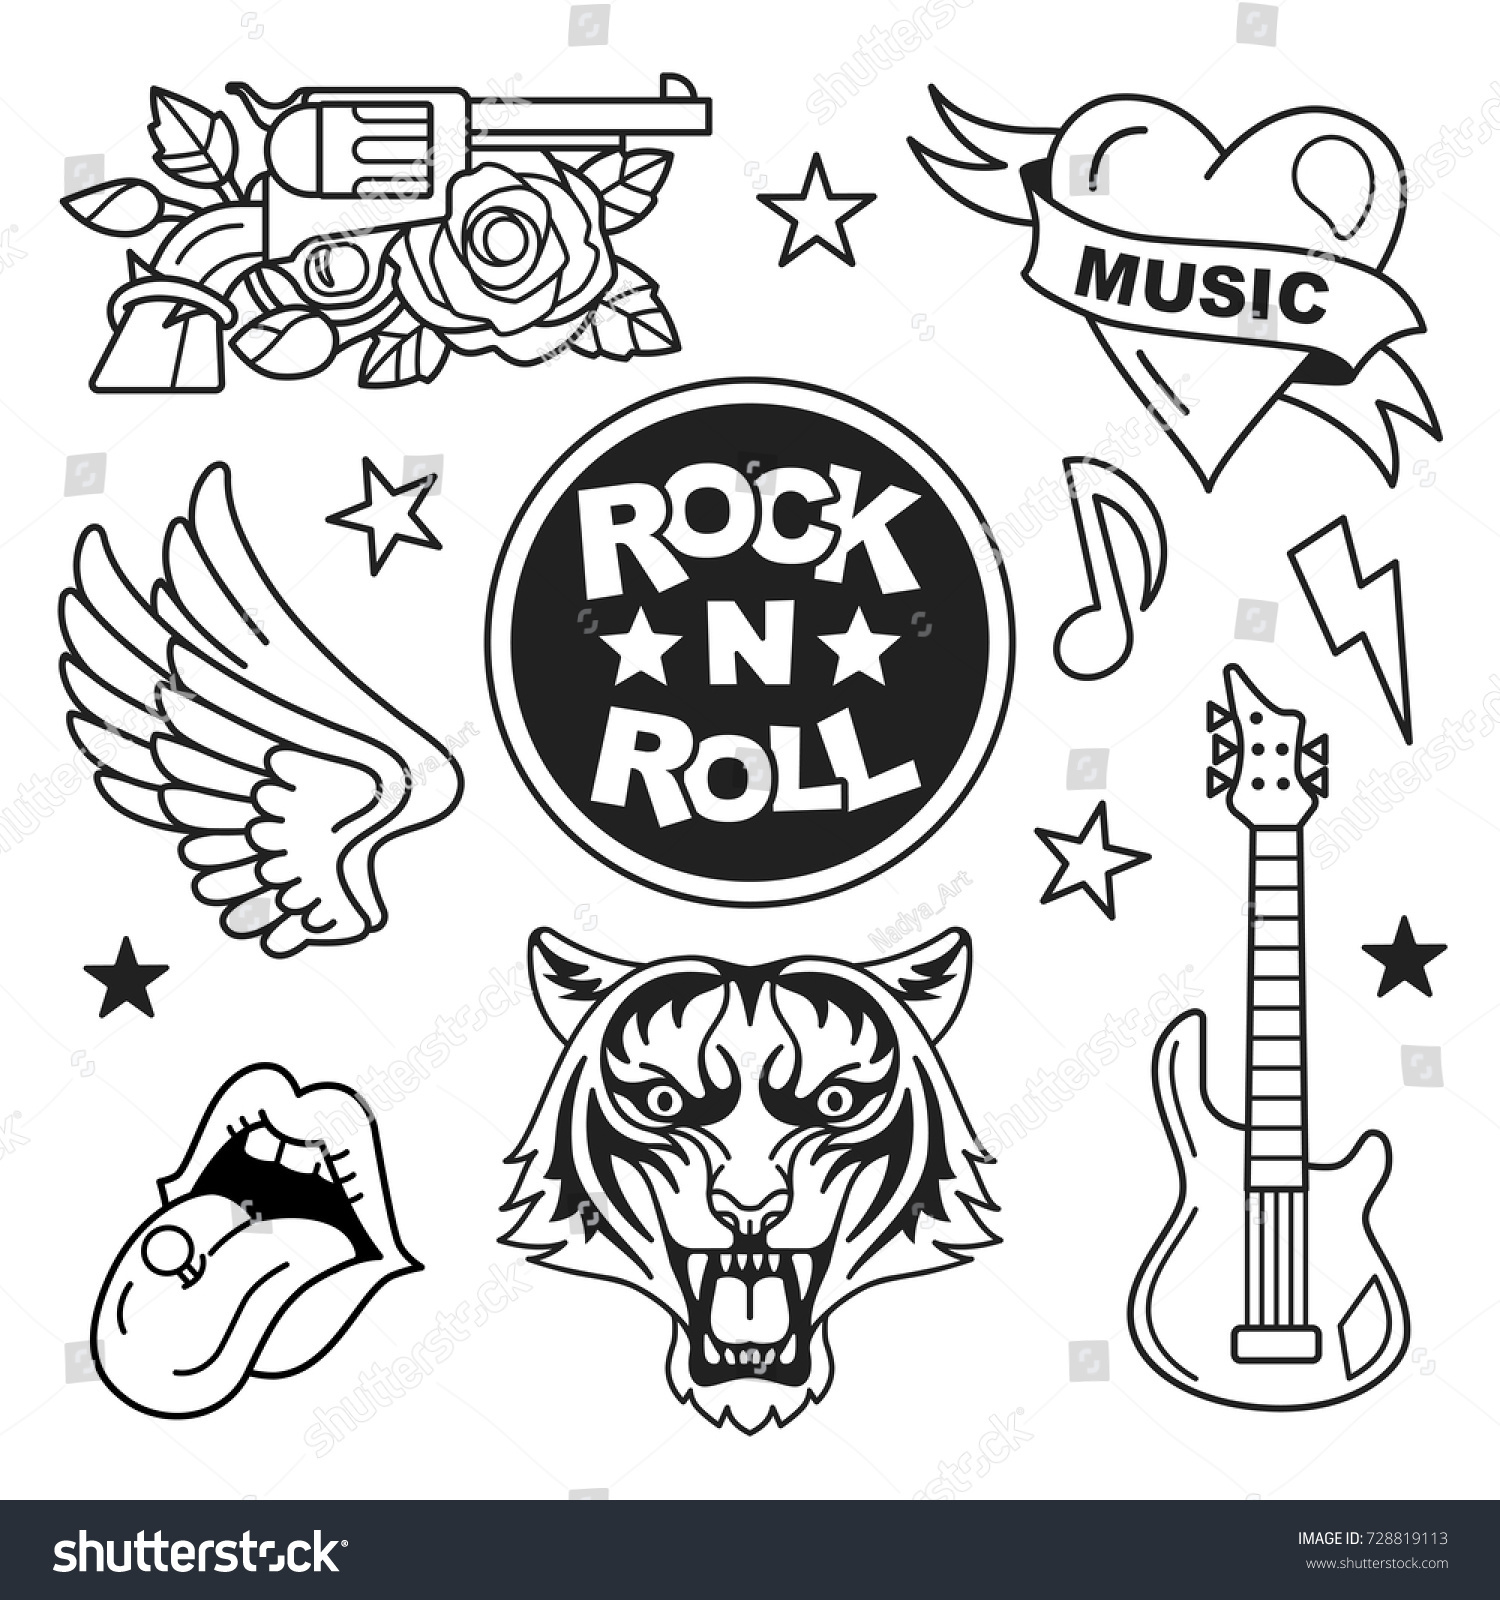 Rock roll patches collection vector illustration stock vector rock and roll patches collection vector illustration of rock music badges and symbols such biocorpaavc Image collections